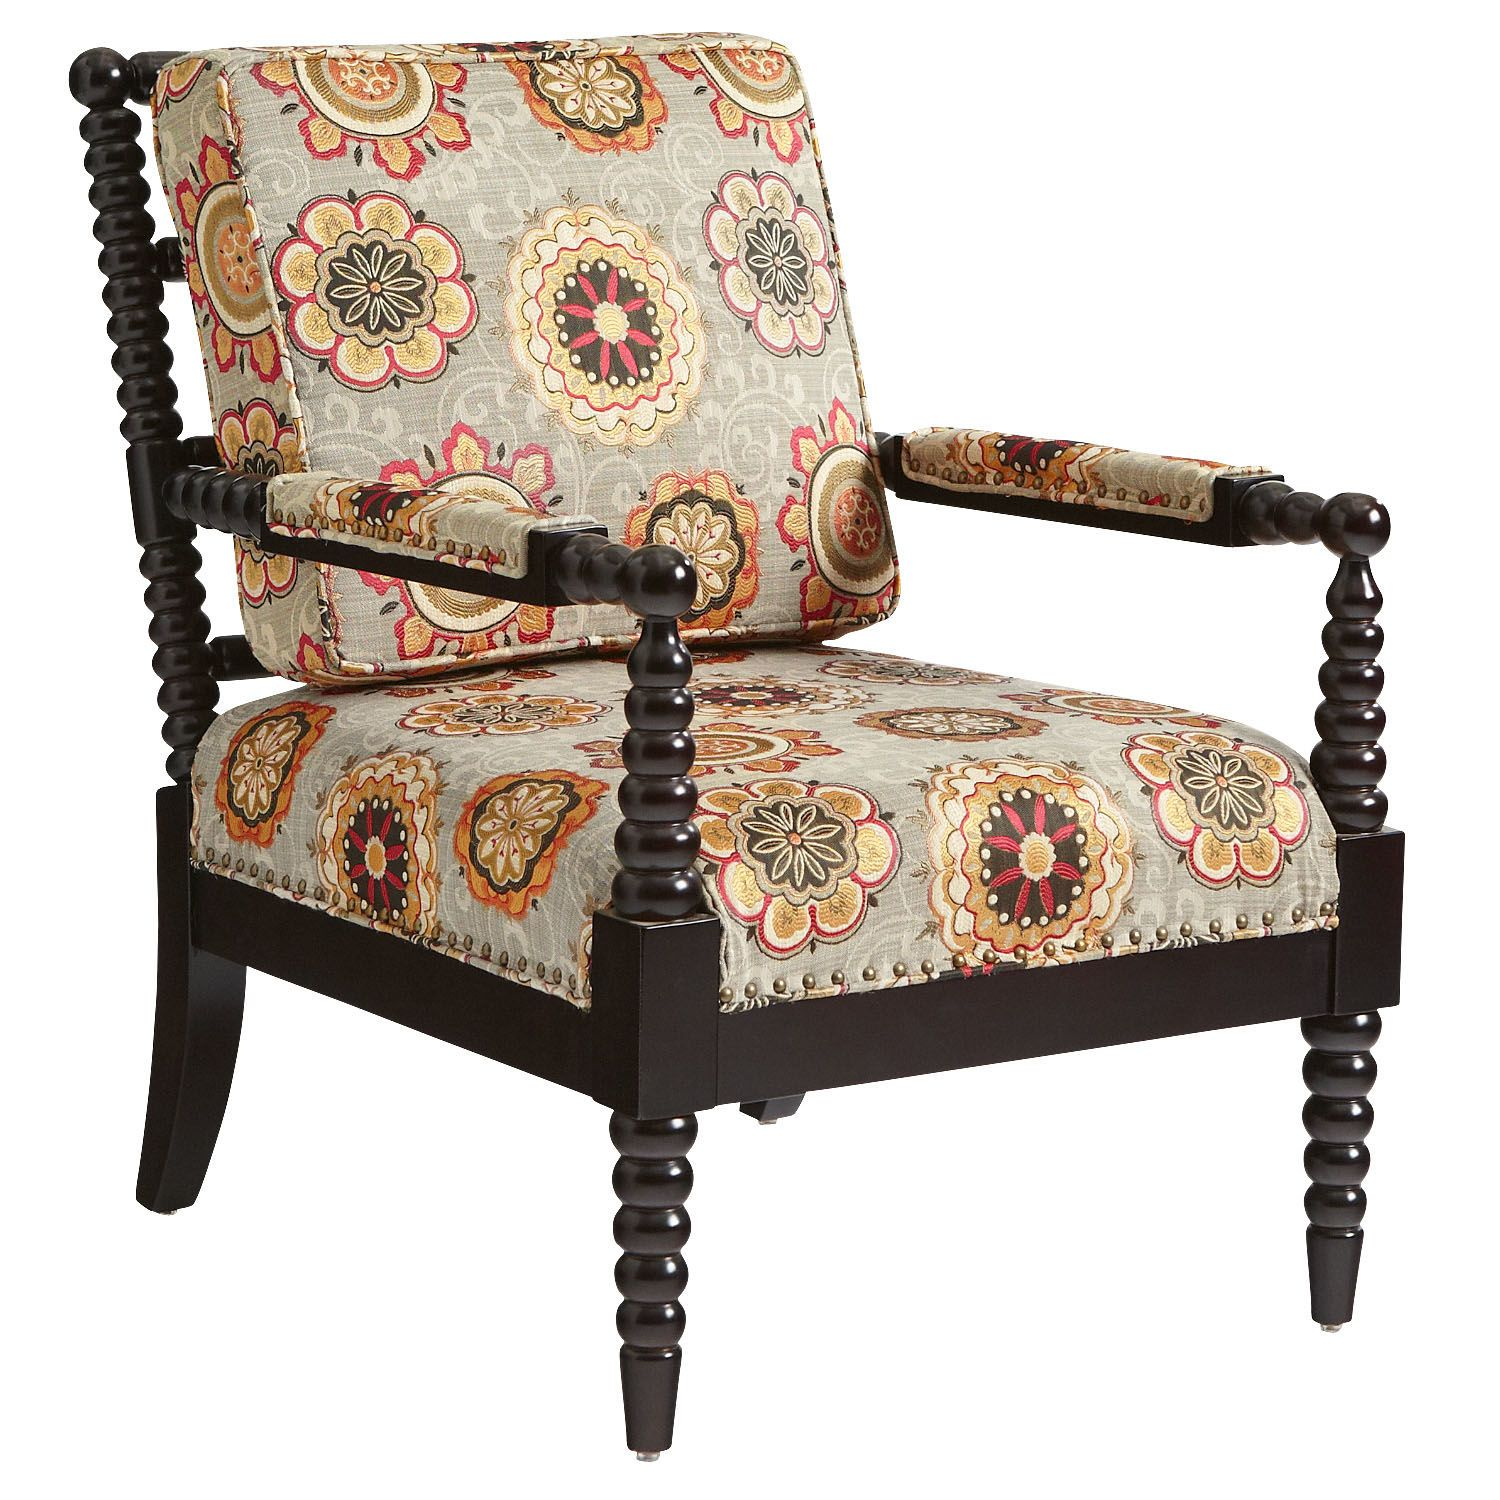 Spindle Arm Chair Spindle Arm Chair At Pier One 500 Bobbin Chair